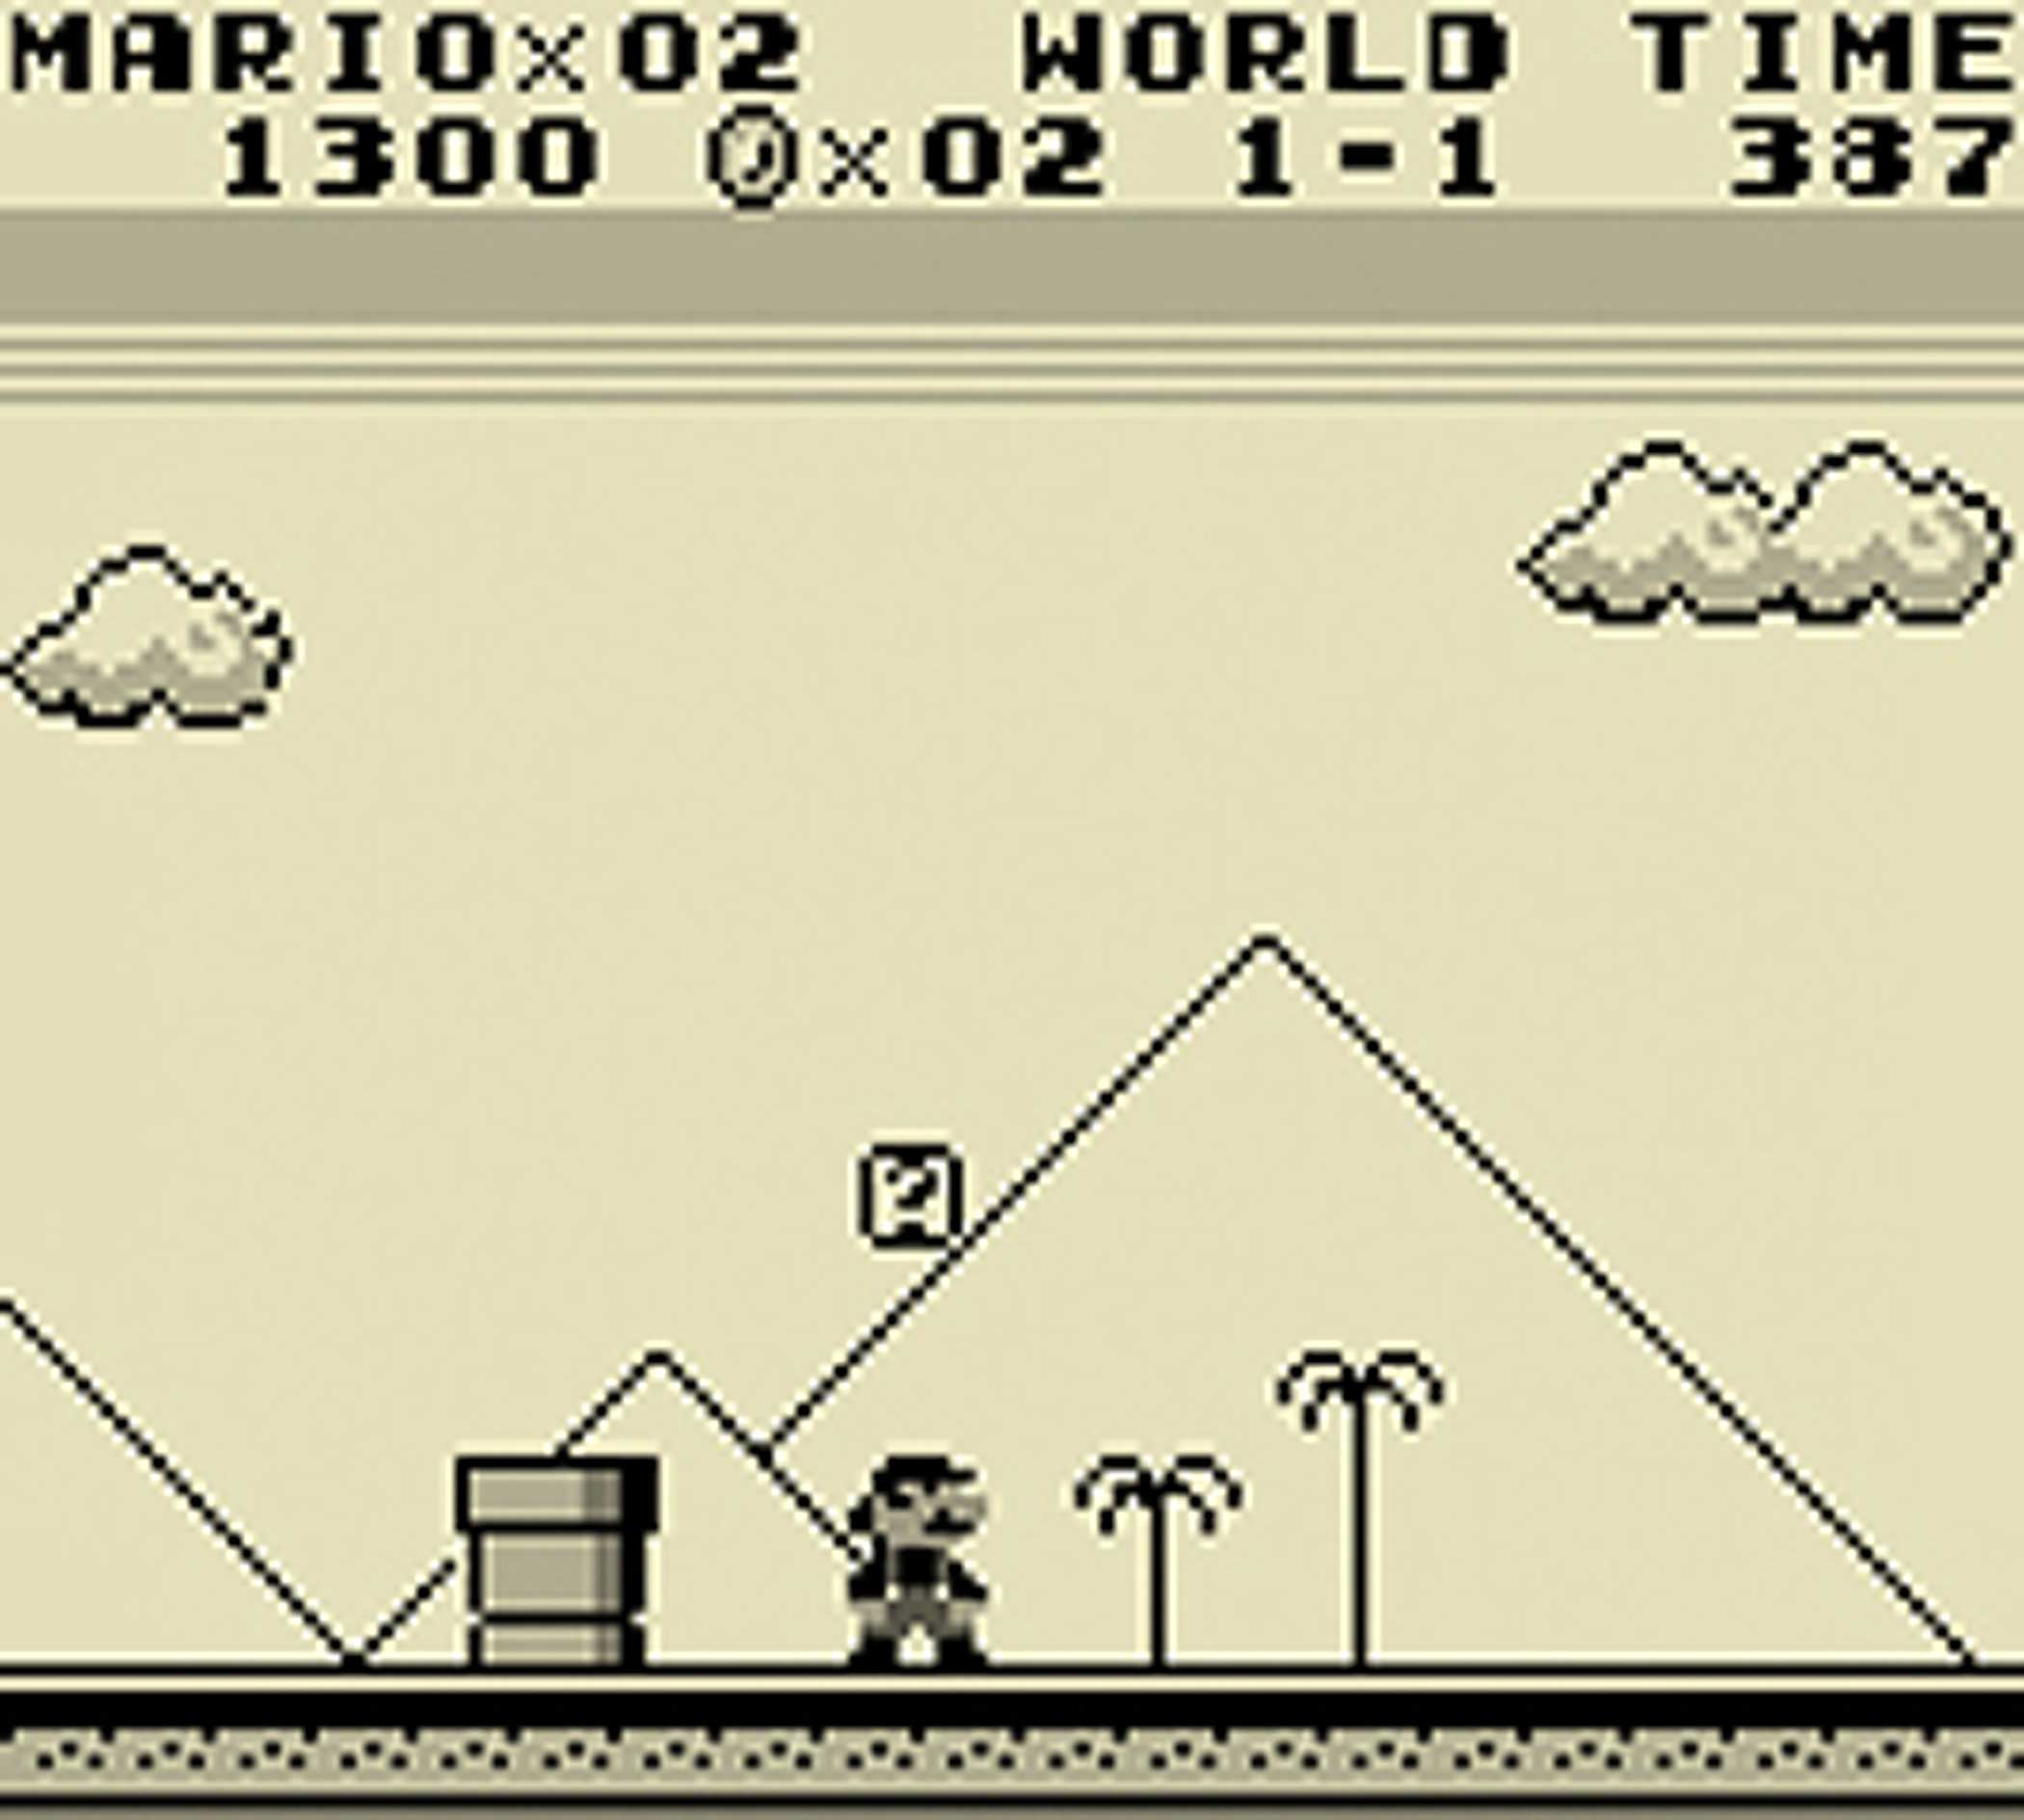 1989: Super Mario Land                                                              Another platform-launcher, Super Mario Land helped Nintendo's Game Boy rocket to stratospheric heights, selling more than 18 million copies (more than Super Mario Bros. 3). It was also the first Super Mario game developed without series creator Shigeru Miyamoto's involvement.